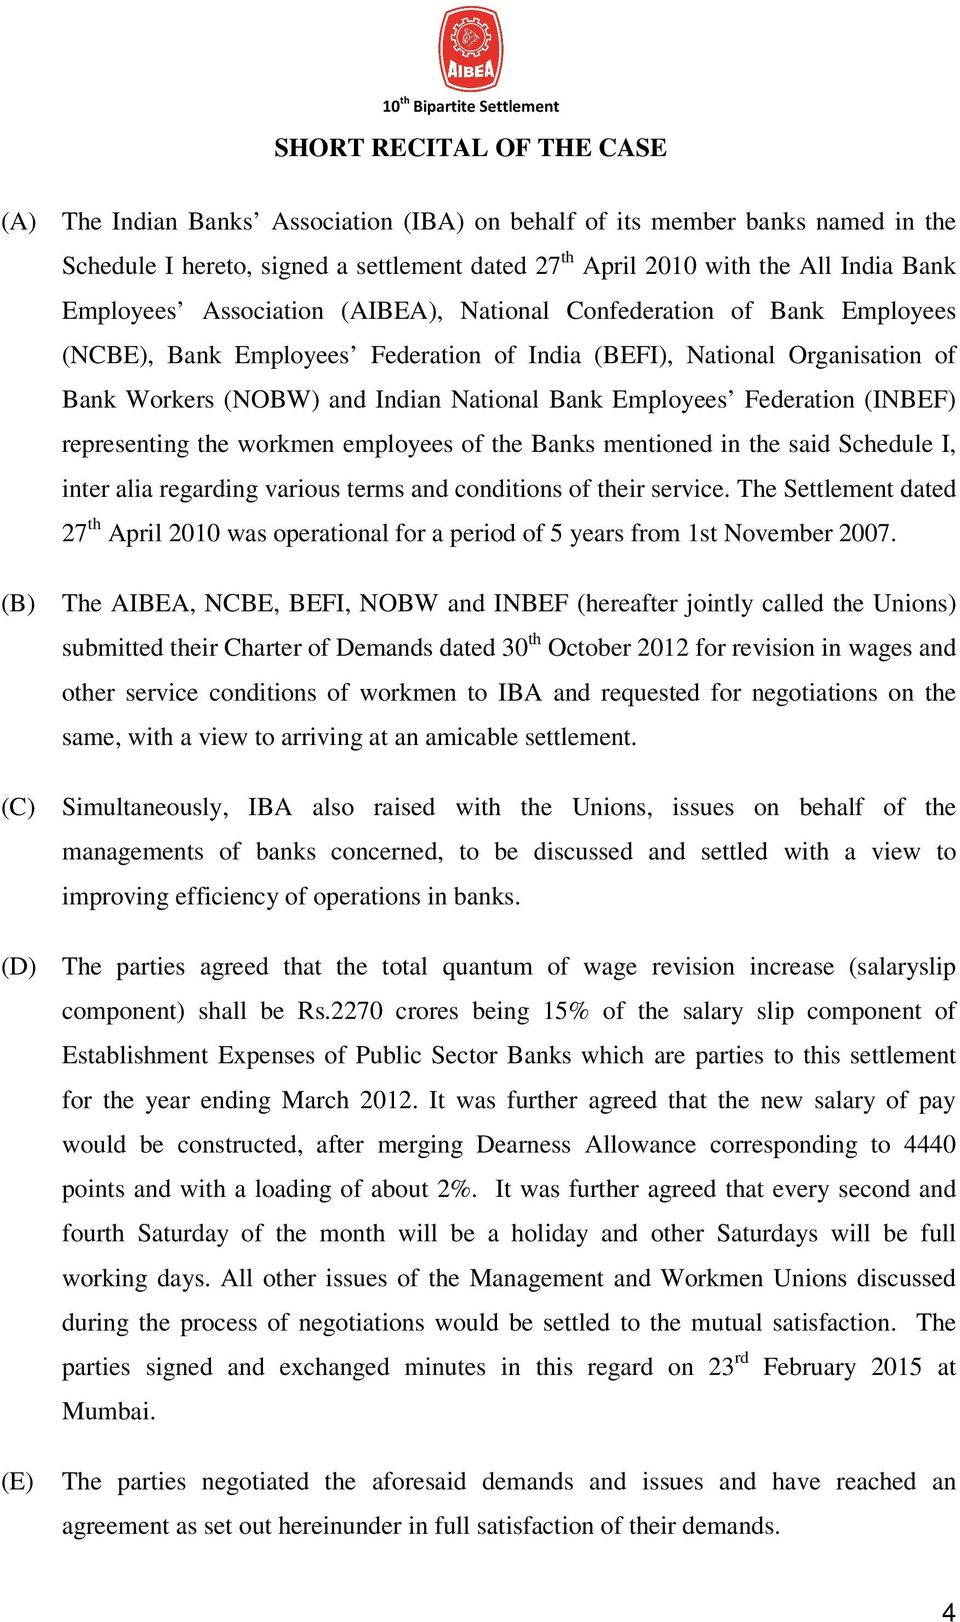 Employees Federation (INBEF) representing the workmen employees of the Banks mentioned in the said Schedule I, inter alia regarding various terms and conditions of their service.